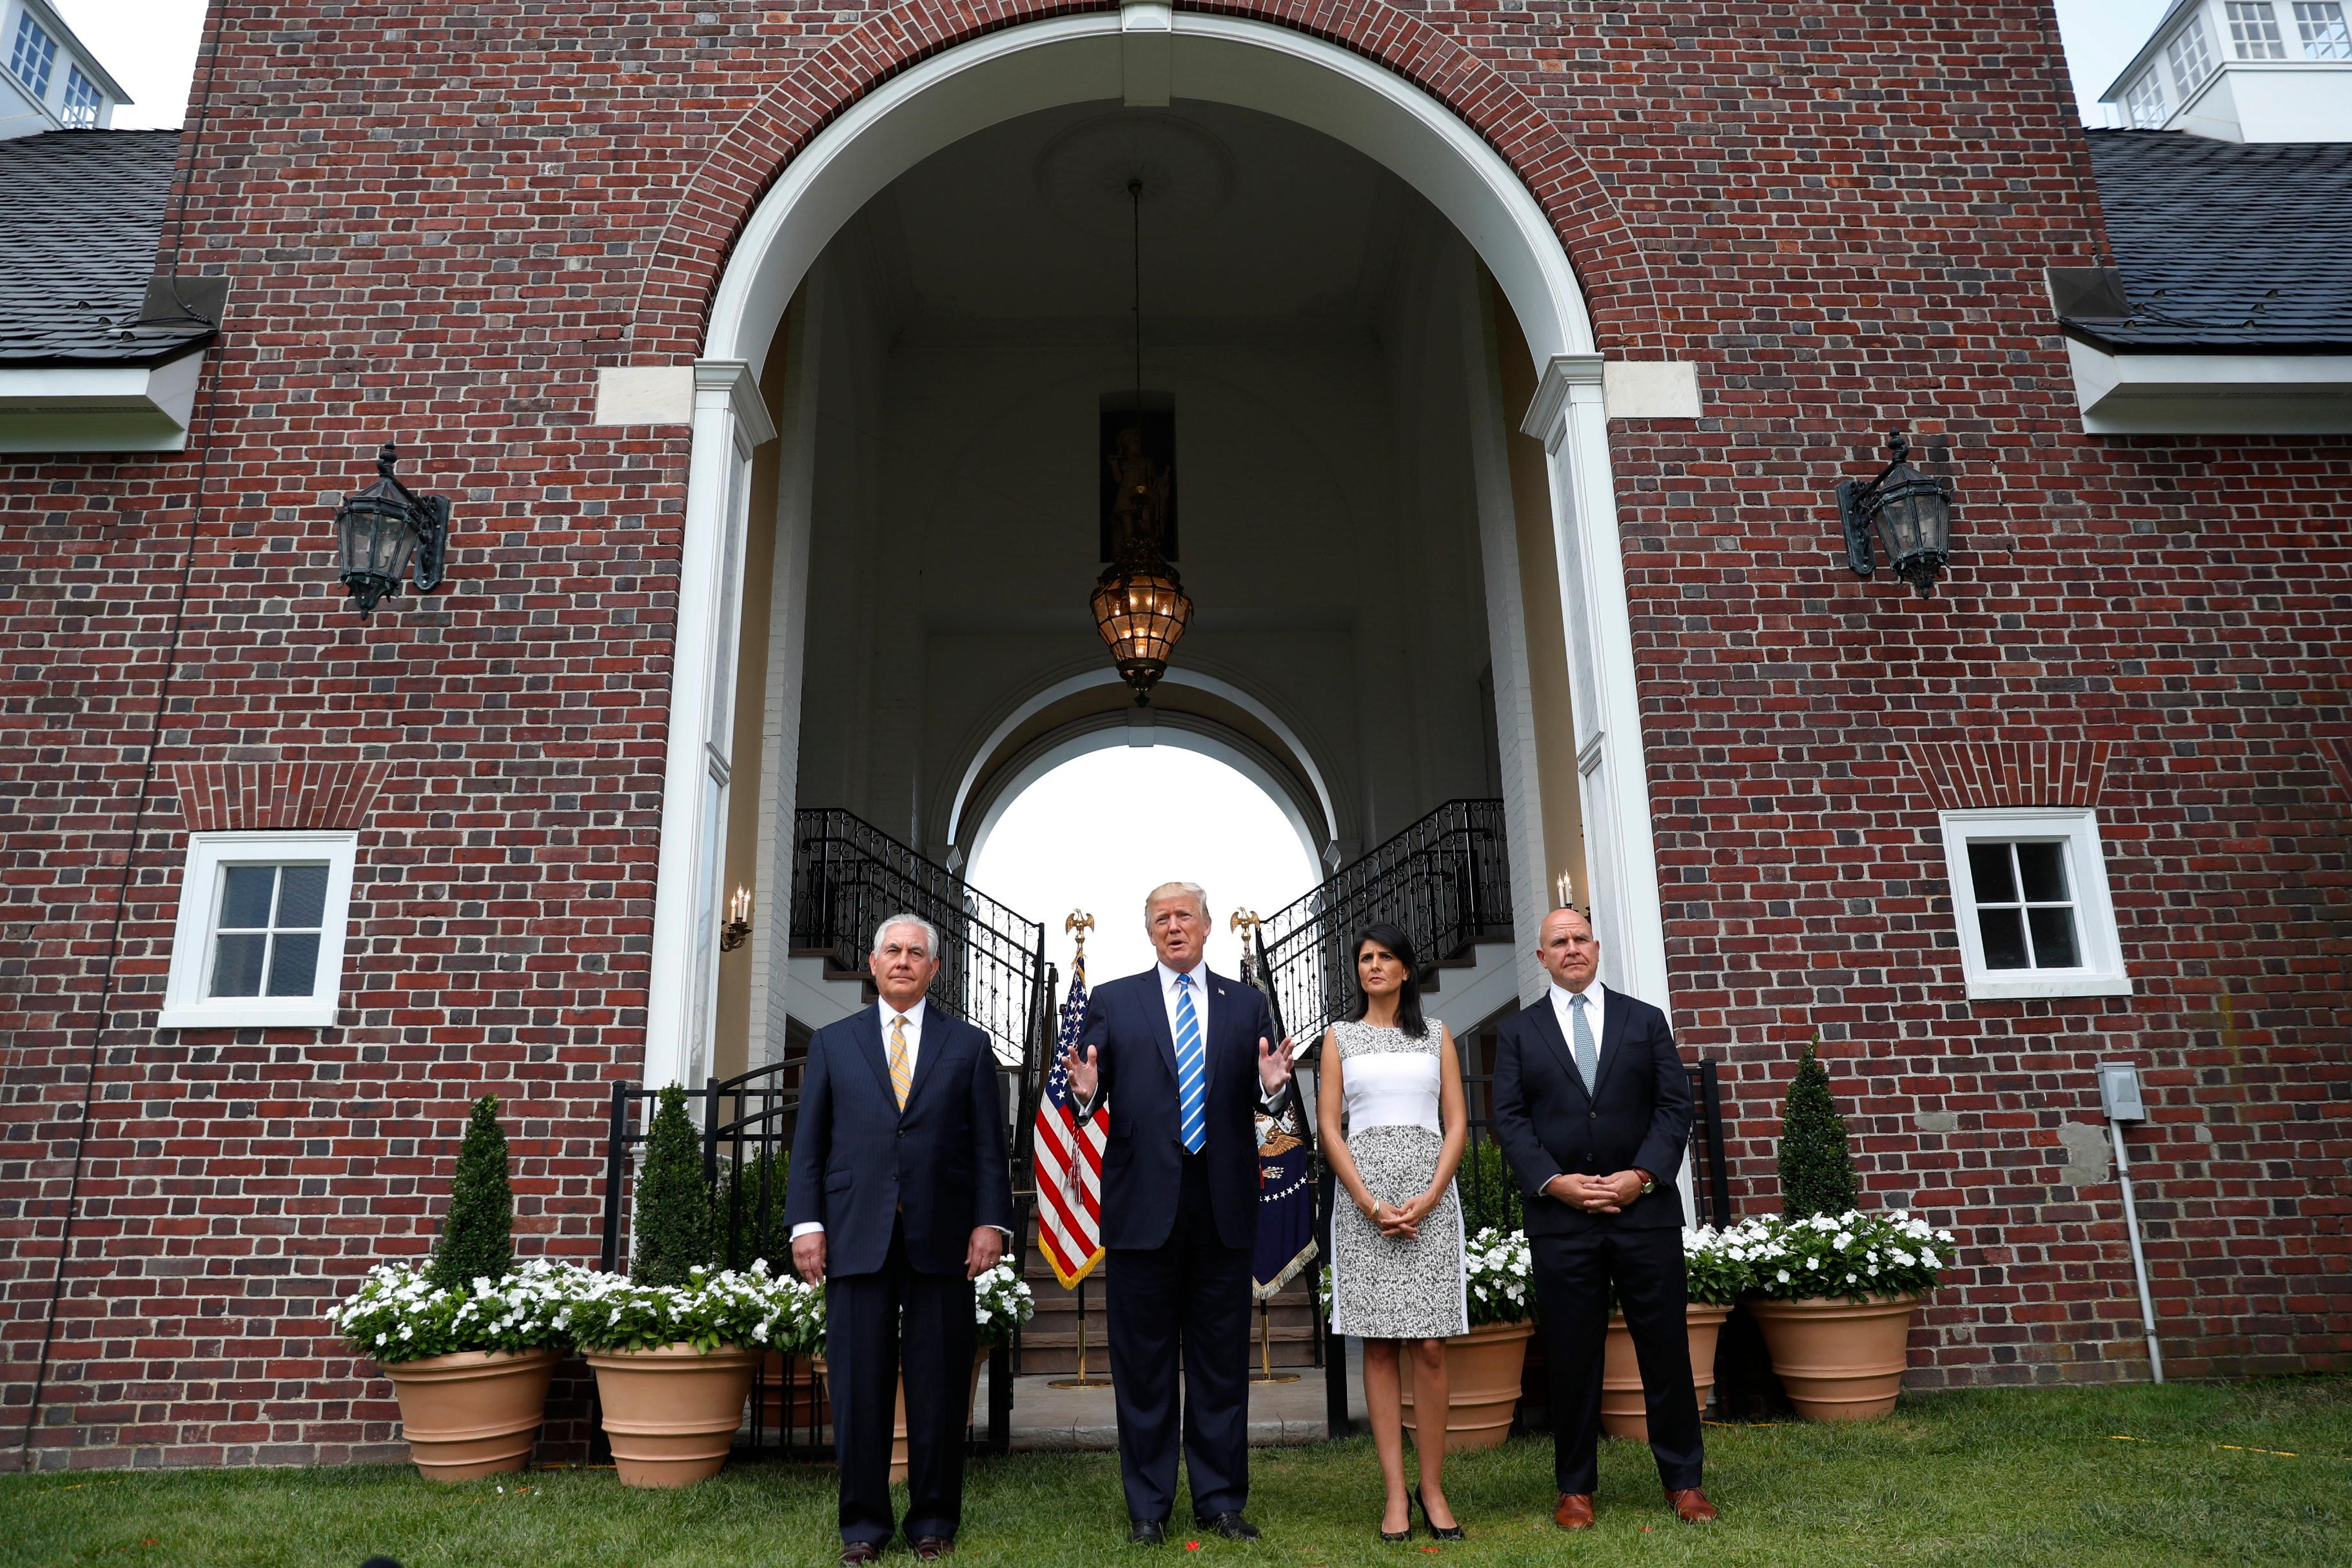 President Donald Trump speaks as Secretary of State Rex Tillerson, U.S. Ambassador to the United Nations Nikki Haley and national security adviser H.R. McMaster listen at Trump National Golf Club in Bedminster, N.J., Friday, Aug. 11, 2017. (AP Photo/Pablo Martinez Monsivais)